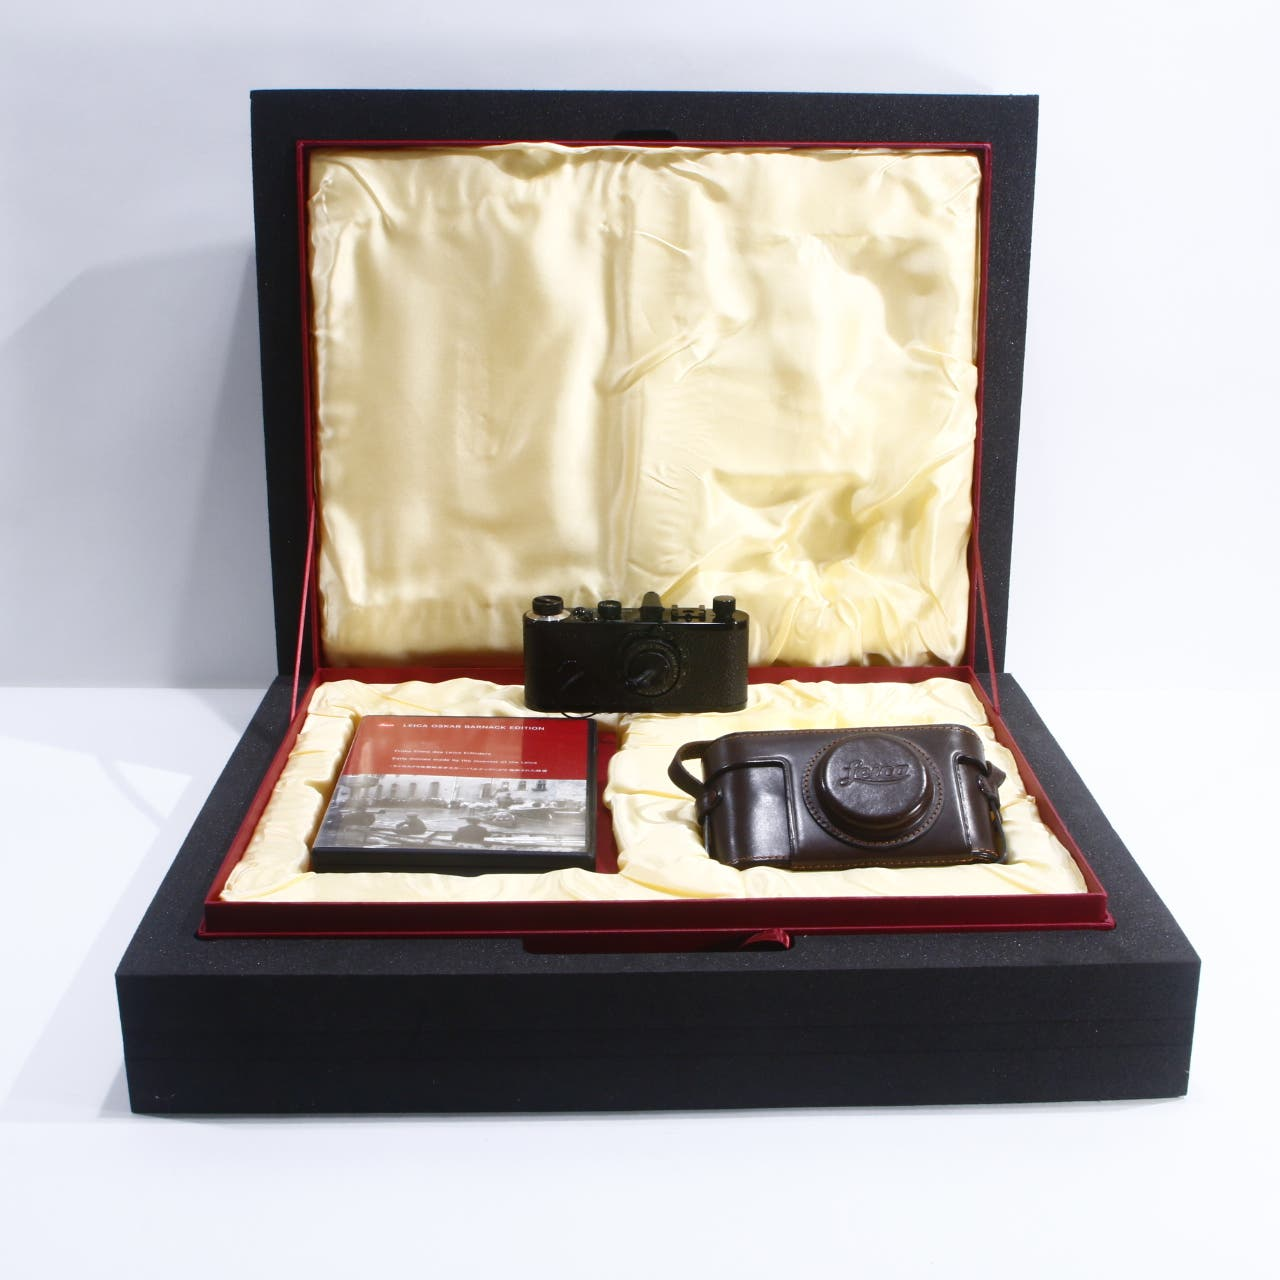 Behold This Authentic Reproduction of One of the First Leica Cameras